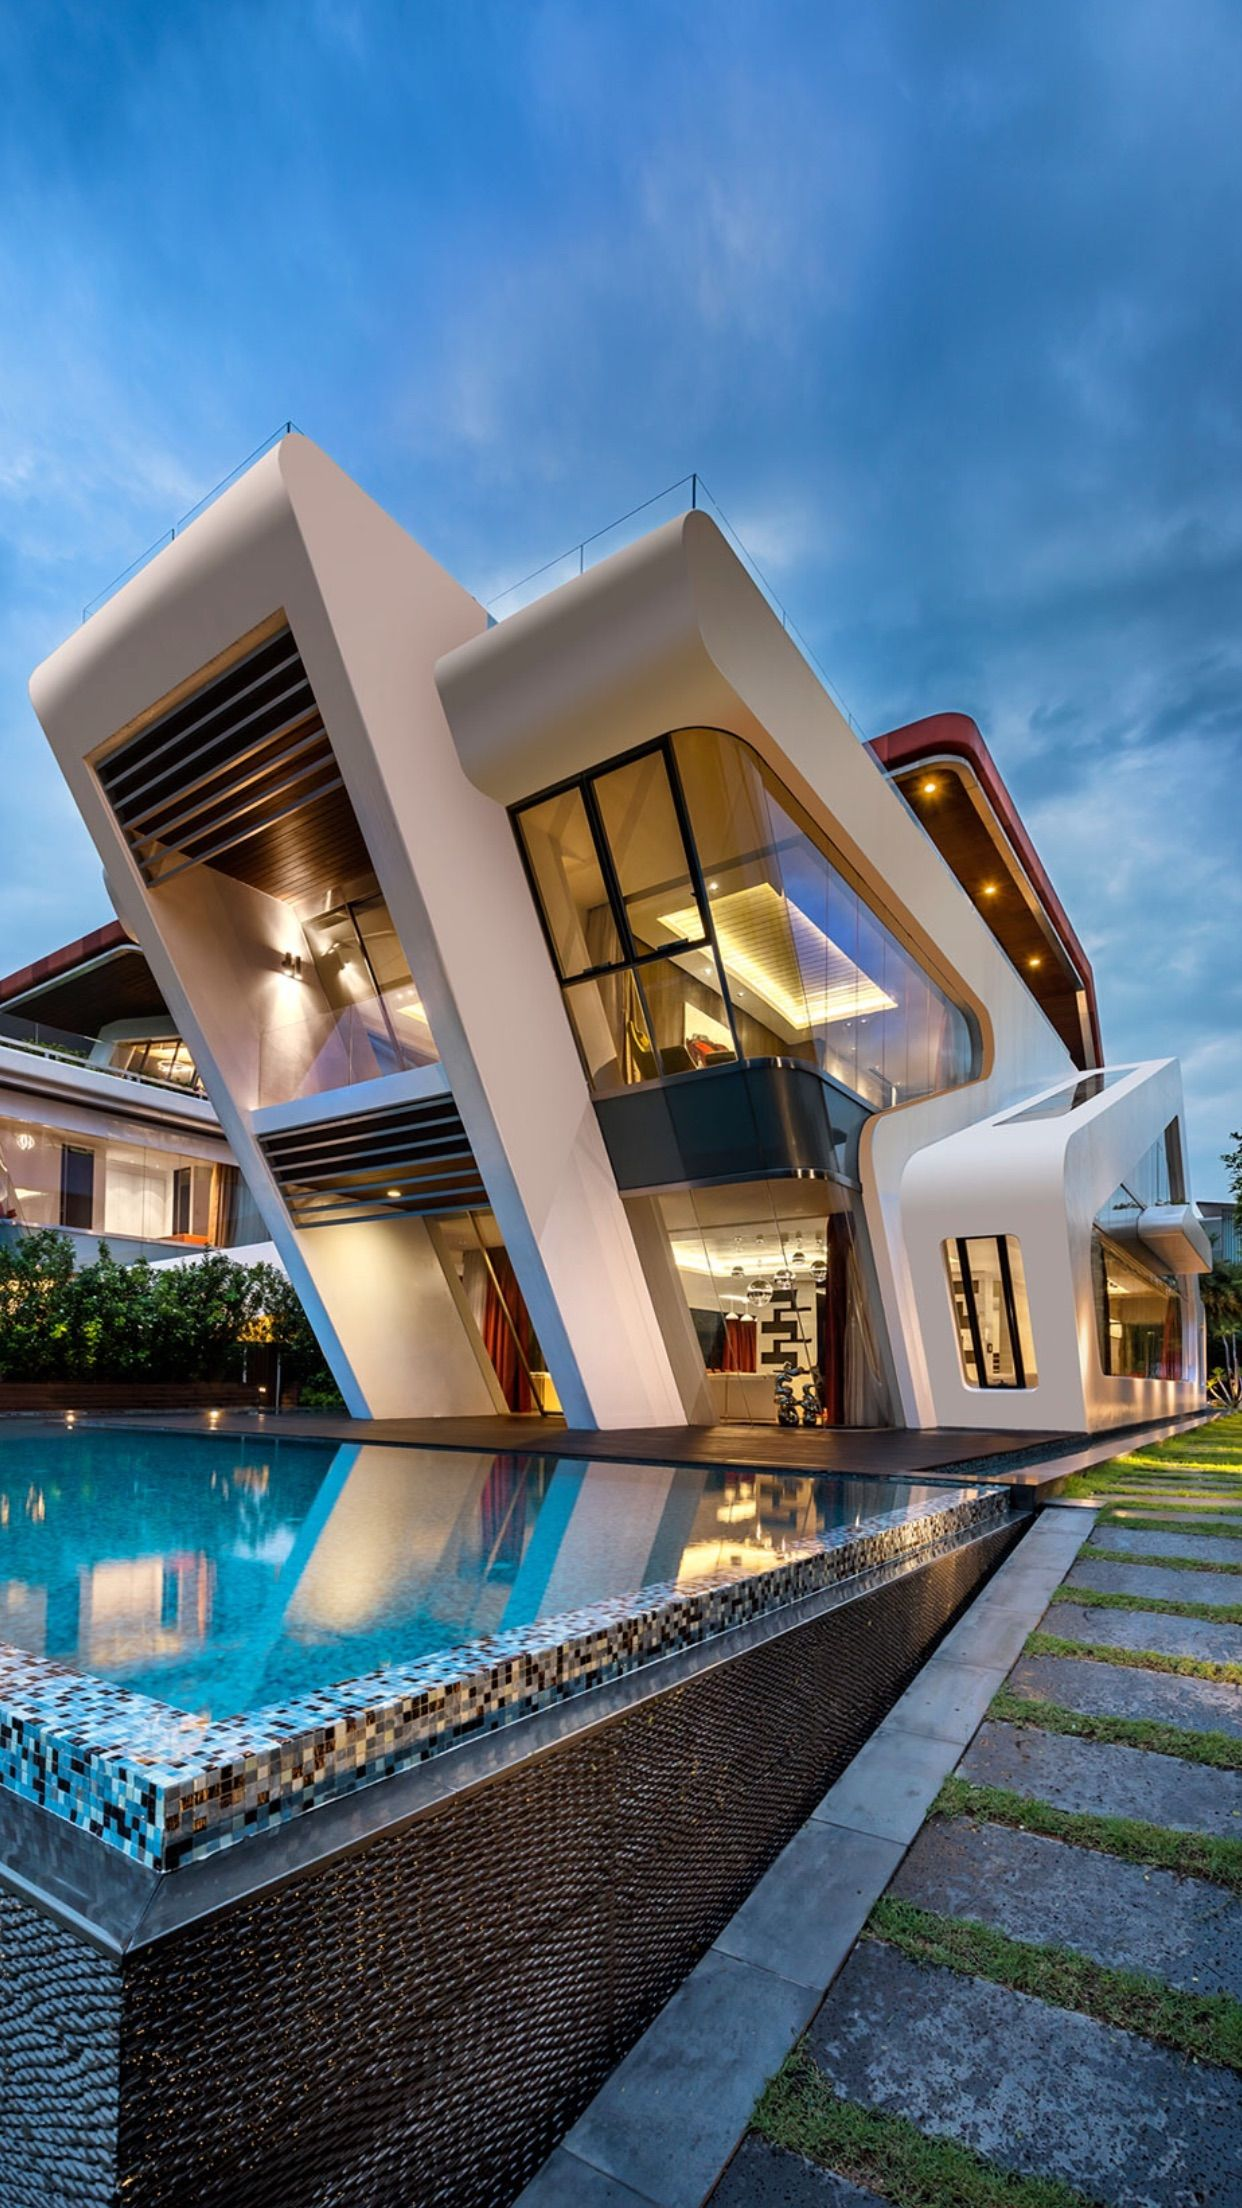 Modern Luxury Villas Designed By Gal Marom Architects: Dream Luxury Homes You Will Want To Move In.